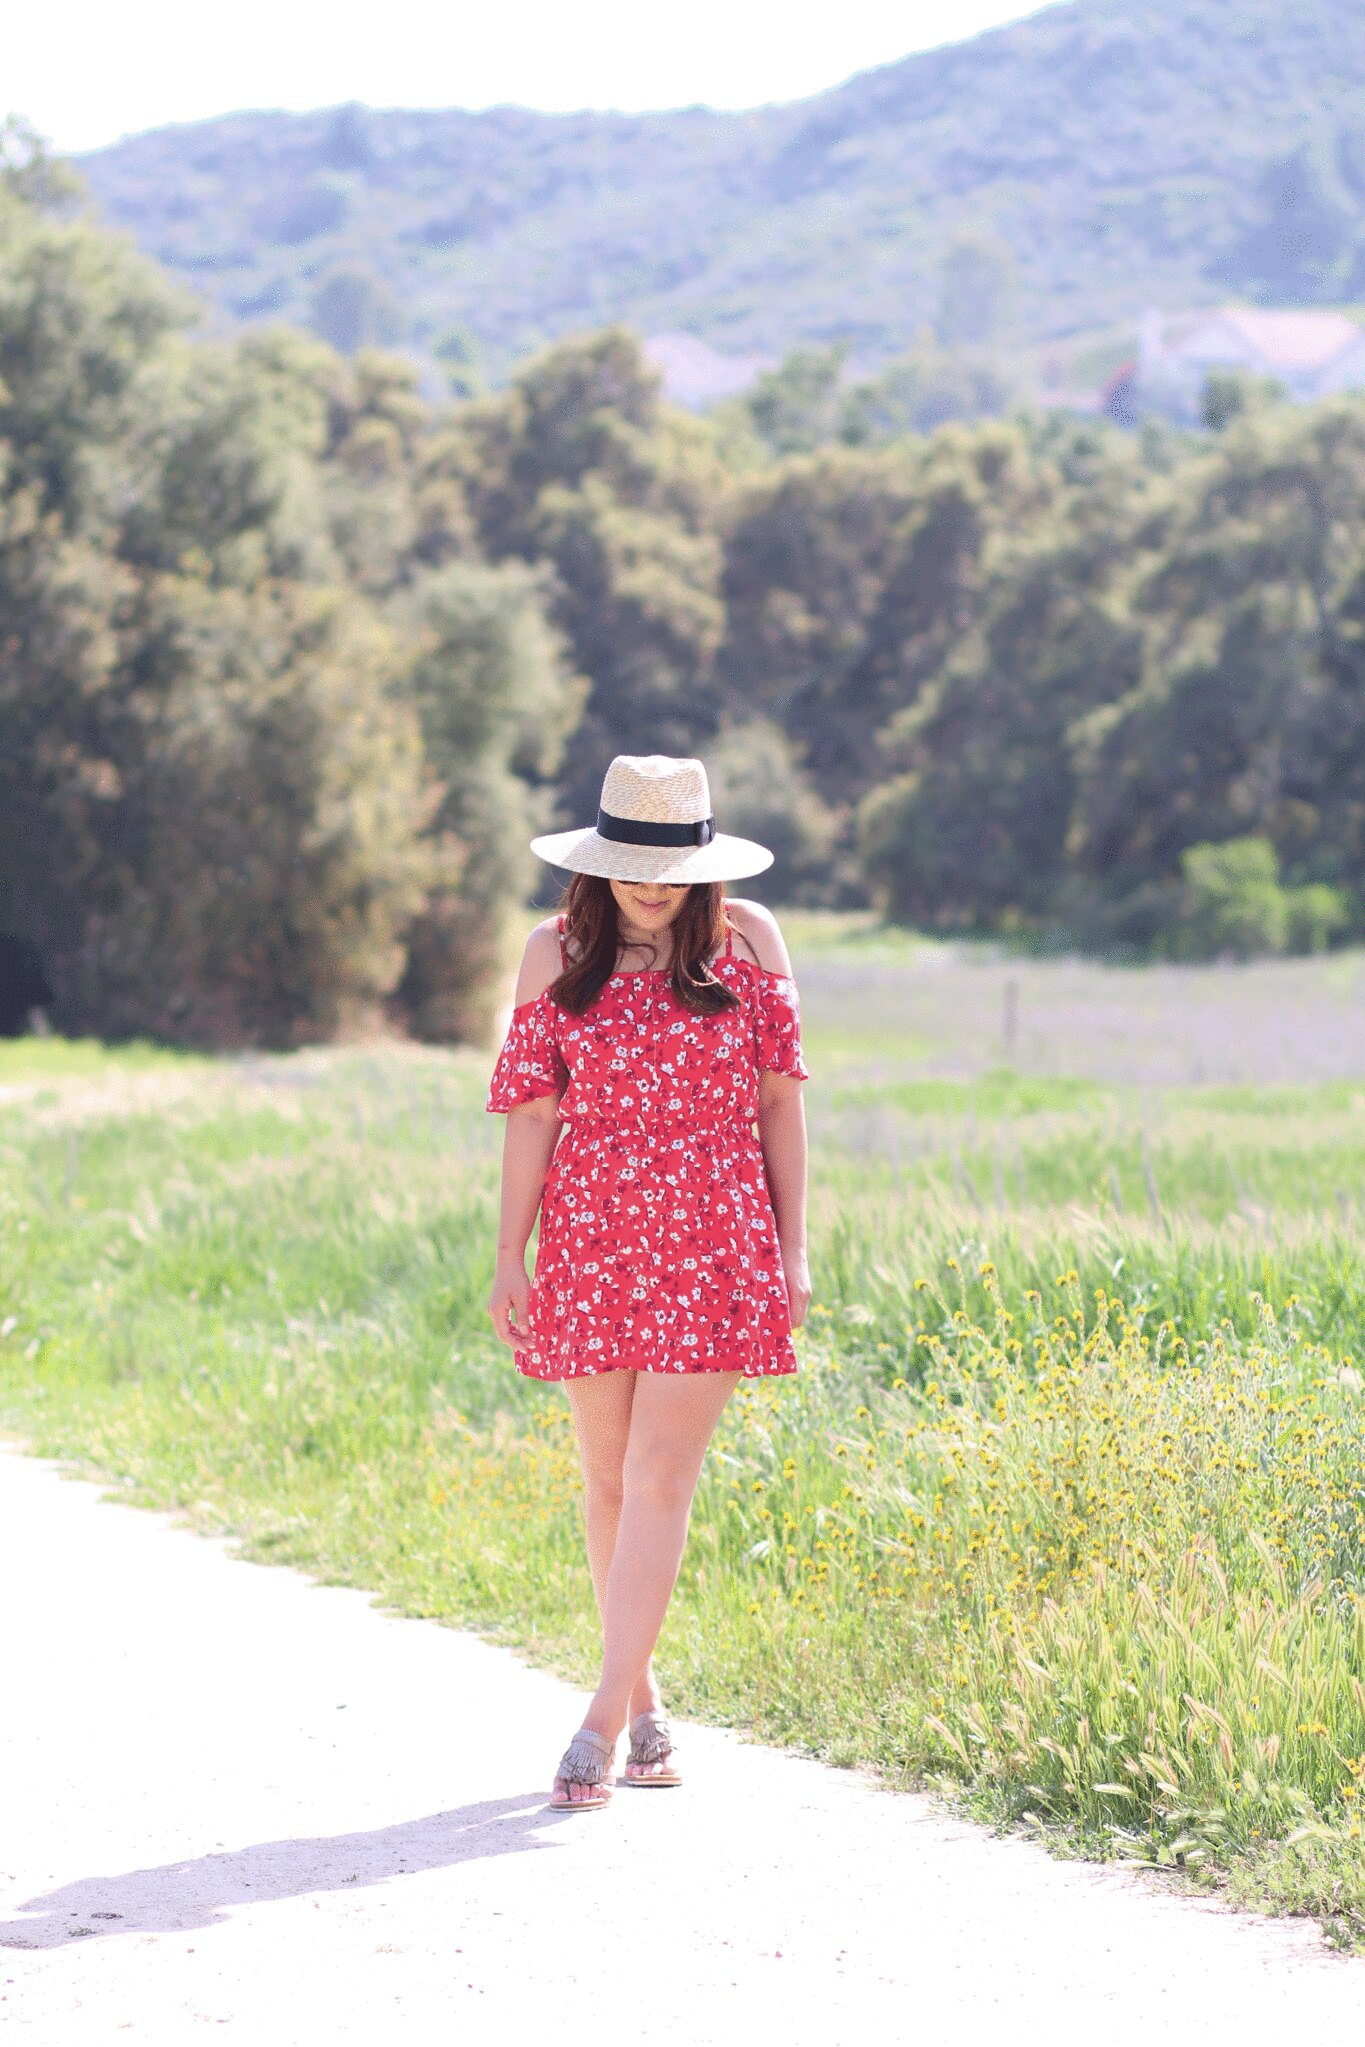 simplyxclassic, miriam, comfortable fringe sandals, summer, hush puppies, shoe a day giveaway, red summer dress, orange county, fashion blogger